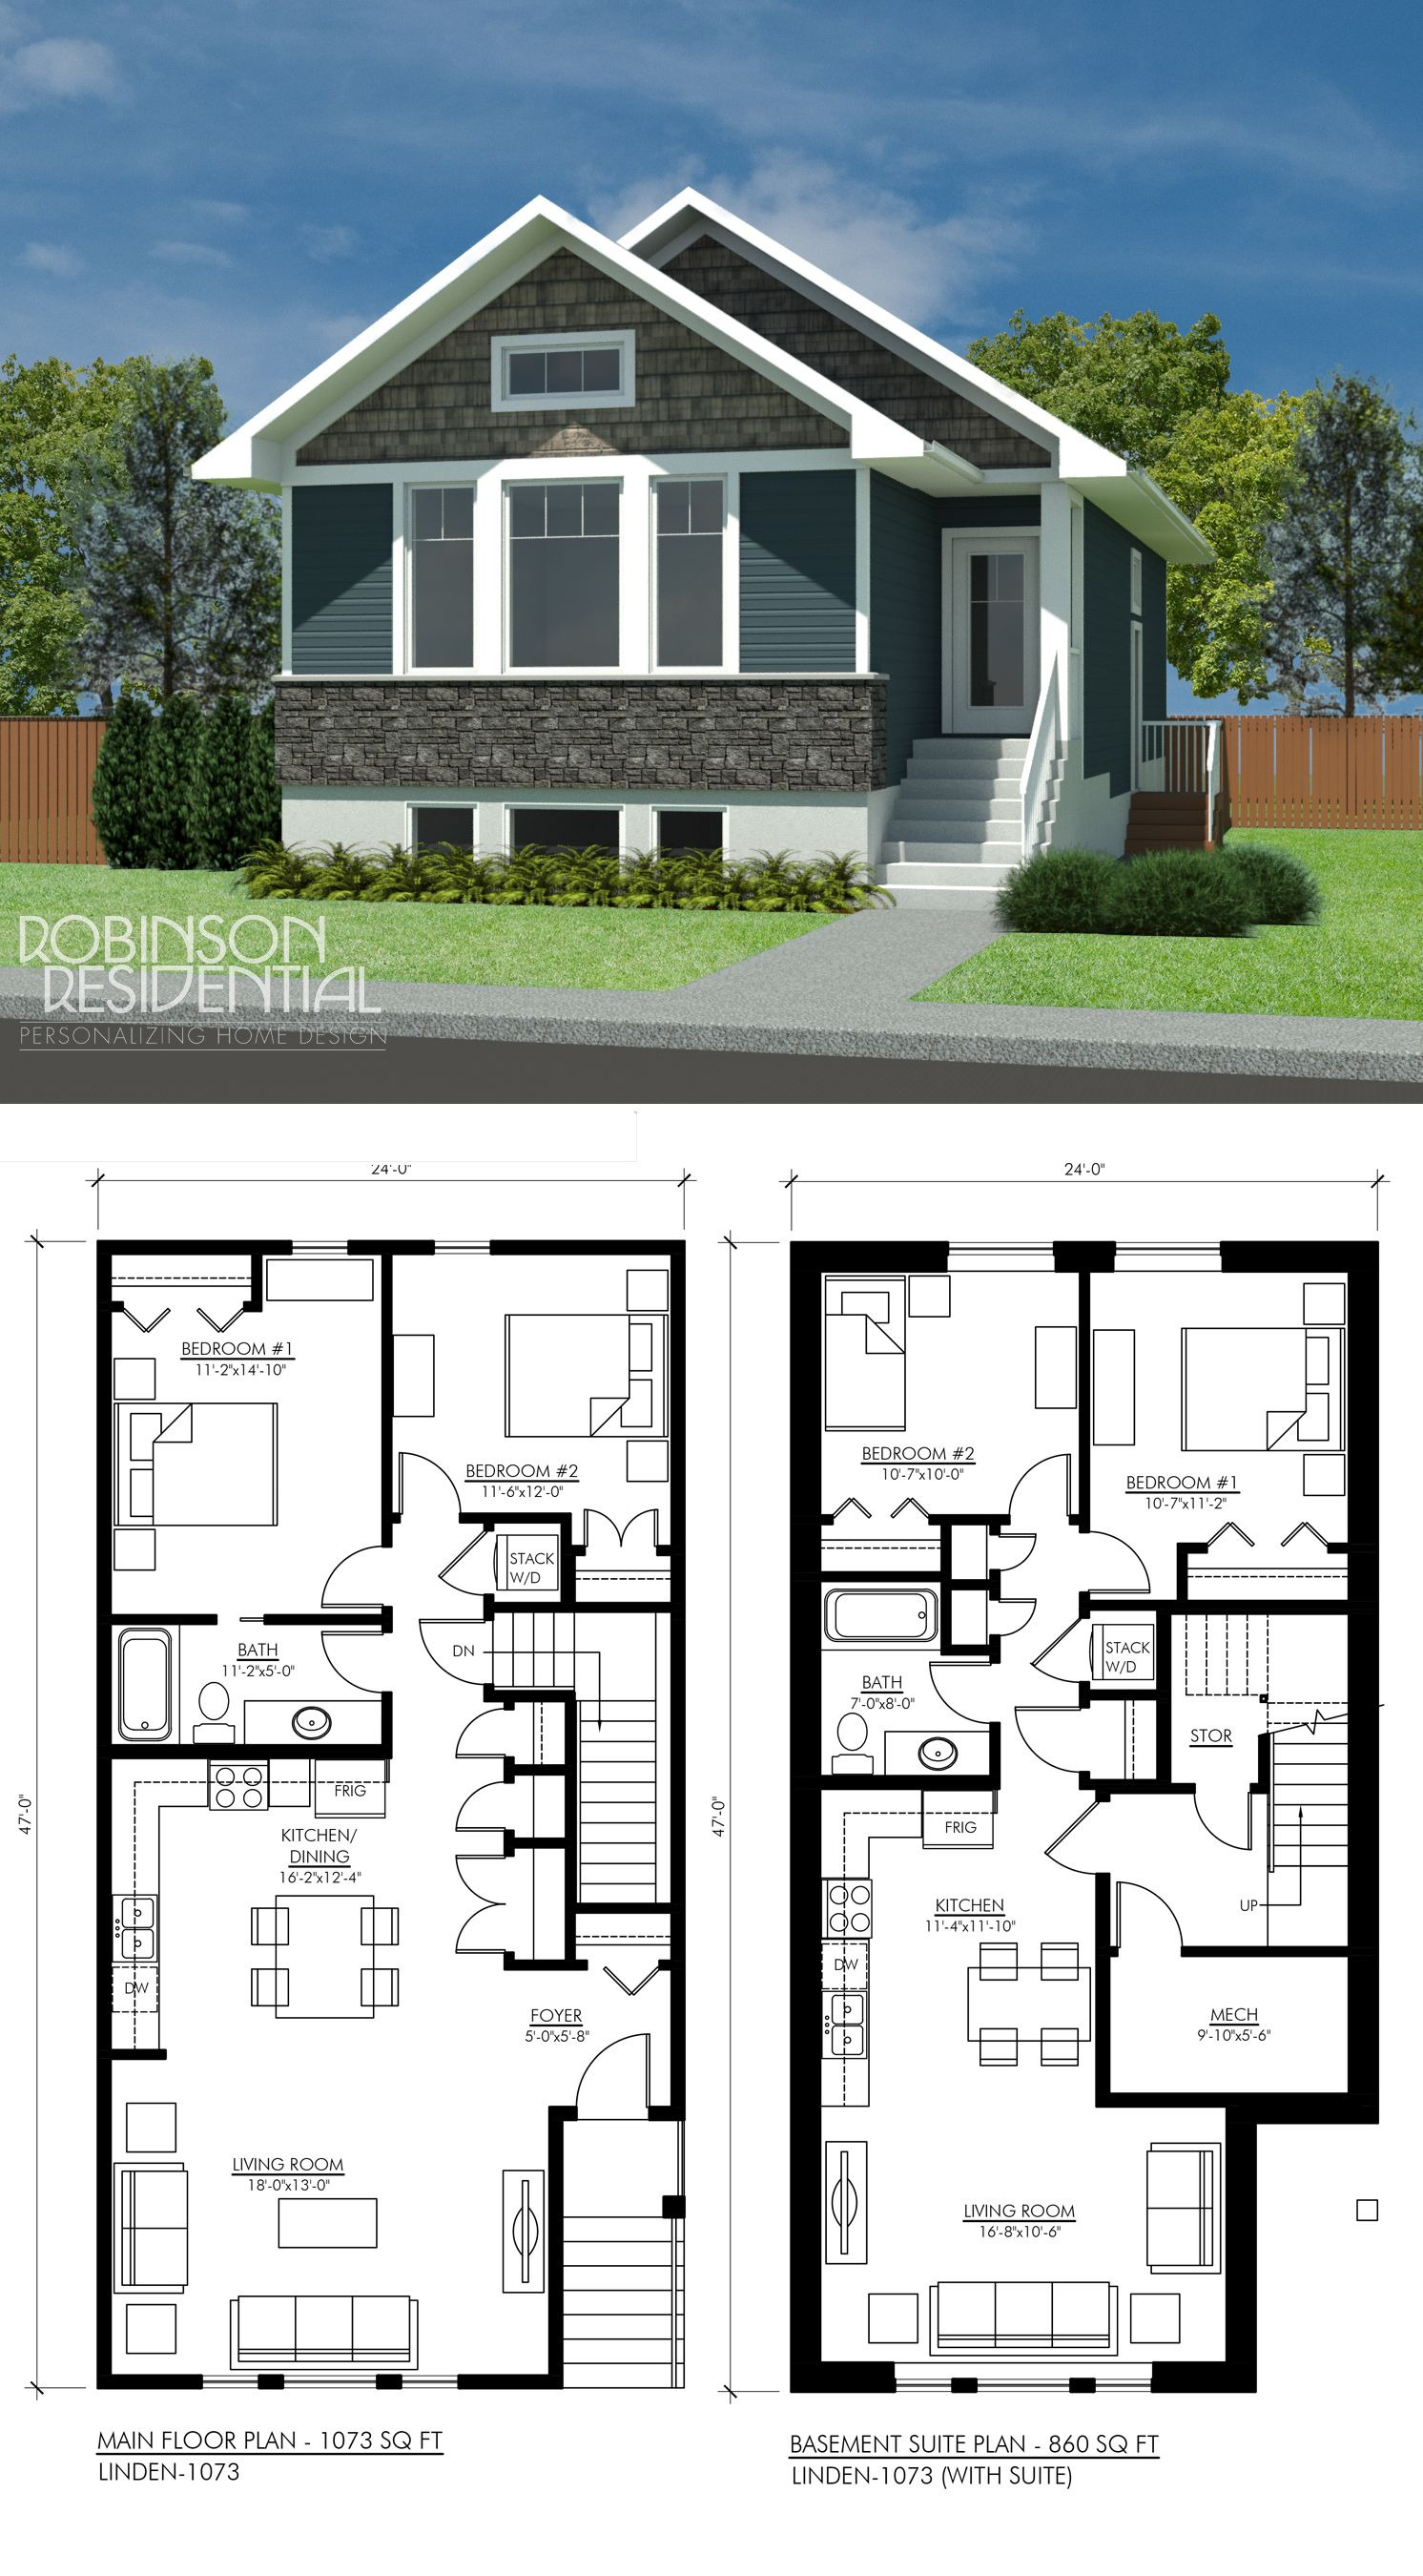 House Plans with Basements Lovely Craftsman Linden 1073 with Suite In 2020